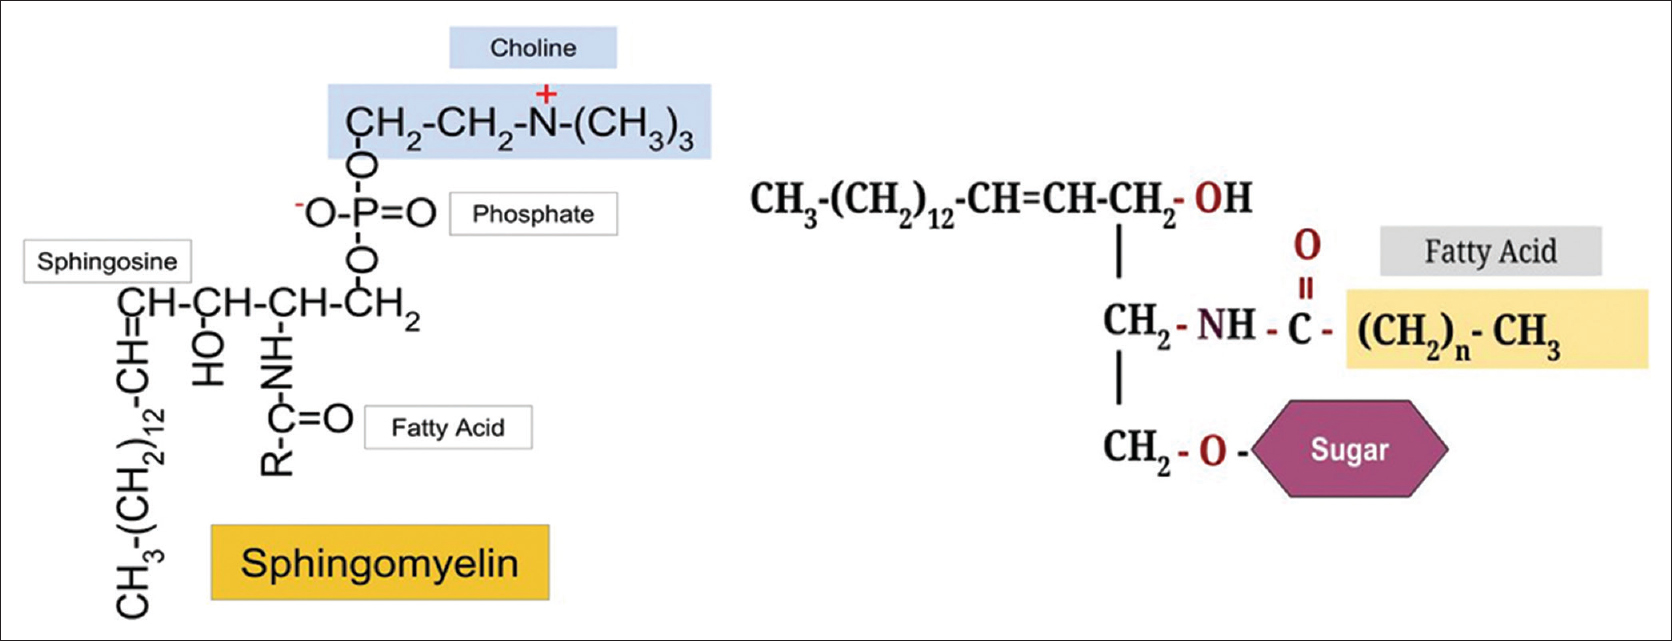 Figure 2: Left: Sphingomyelin is a sphingolipid with a phosphocholine headgroup. Sphingosine is an amino alcohol with 18 C atoms, 2 hydroxyl groups, one amino group, and one C=C double bond in the trans configuration. Right: Cerebroside is a glycosphingolipid with a sugar residue (galactose or glucose) attached to sphingosine through a glycosidic bond